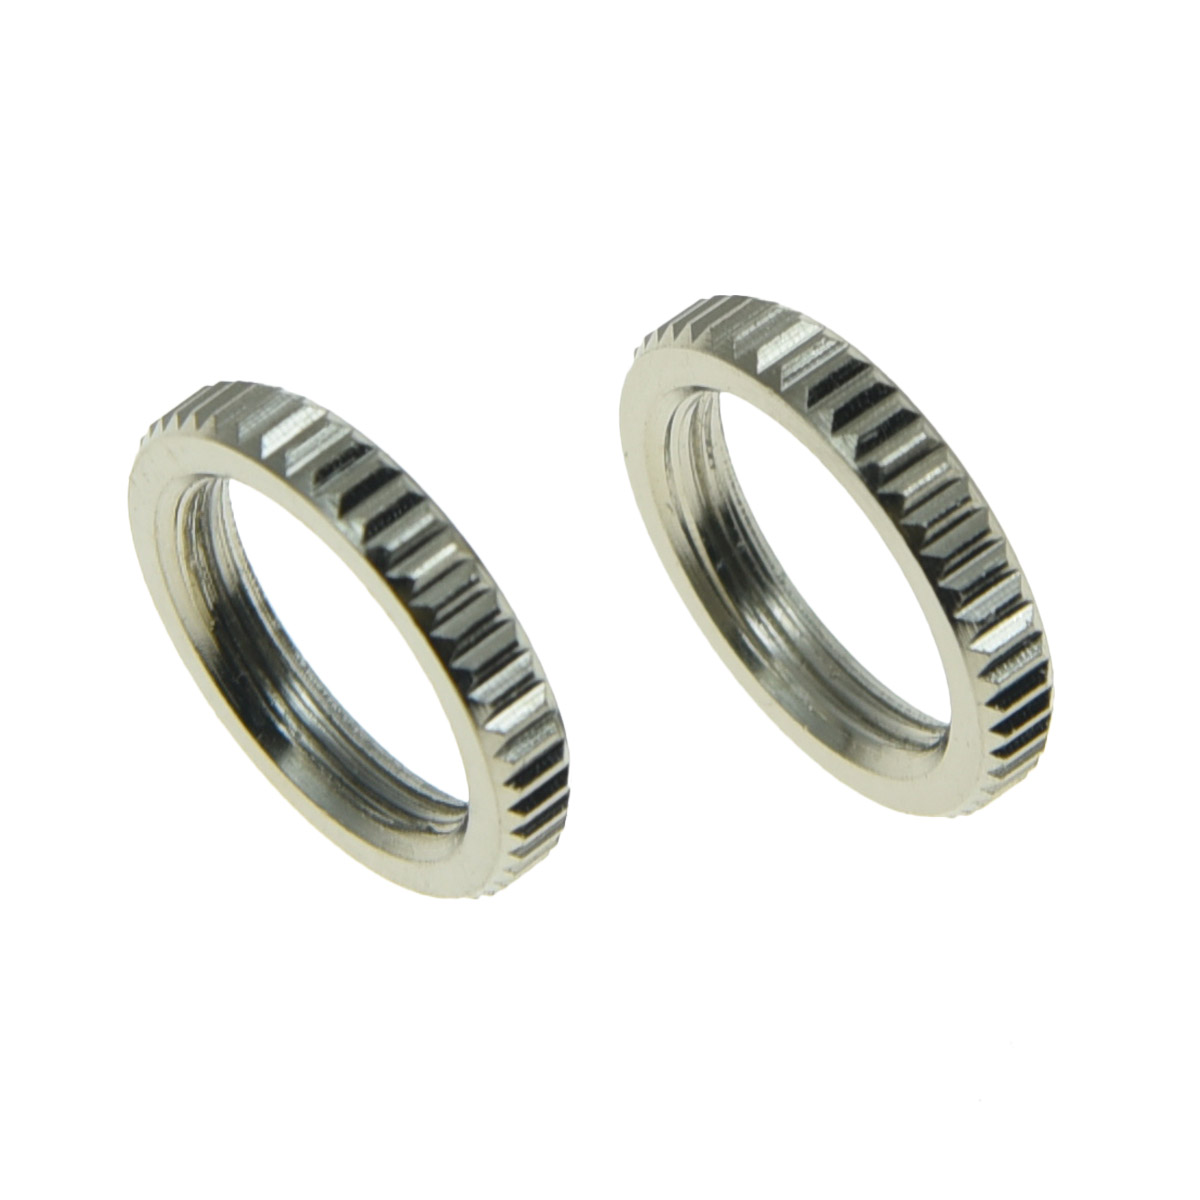 2 Fine Shouldered Deep Toggle Switch Nut Nickel For Switchcraft Made in USA